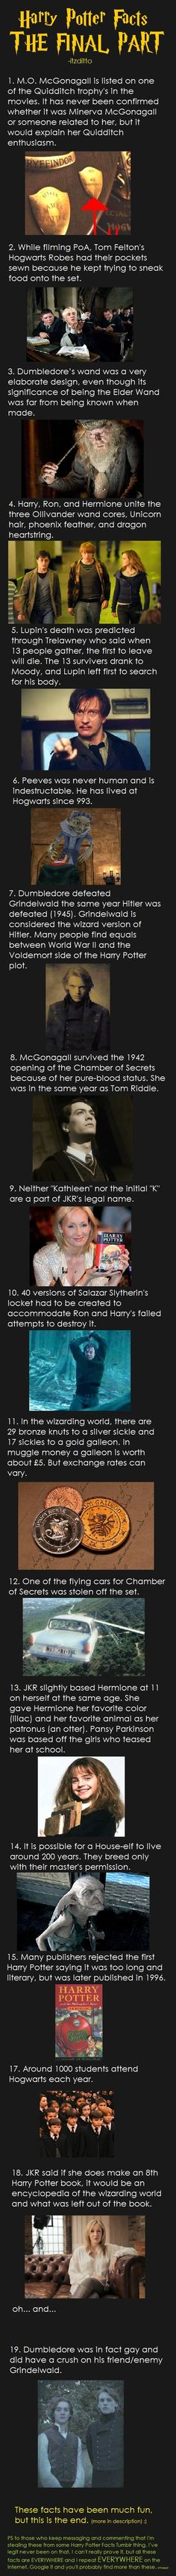 Harry Potter Facts the Final Part